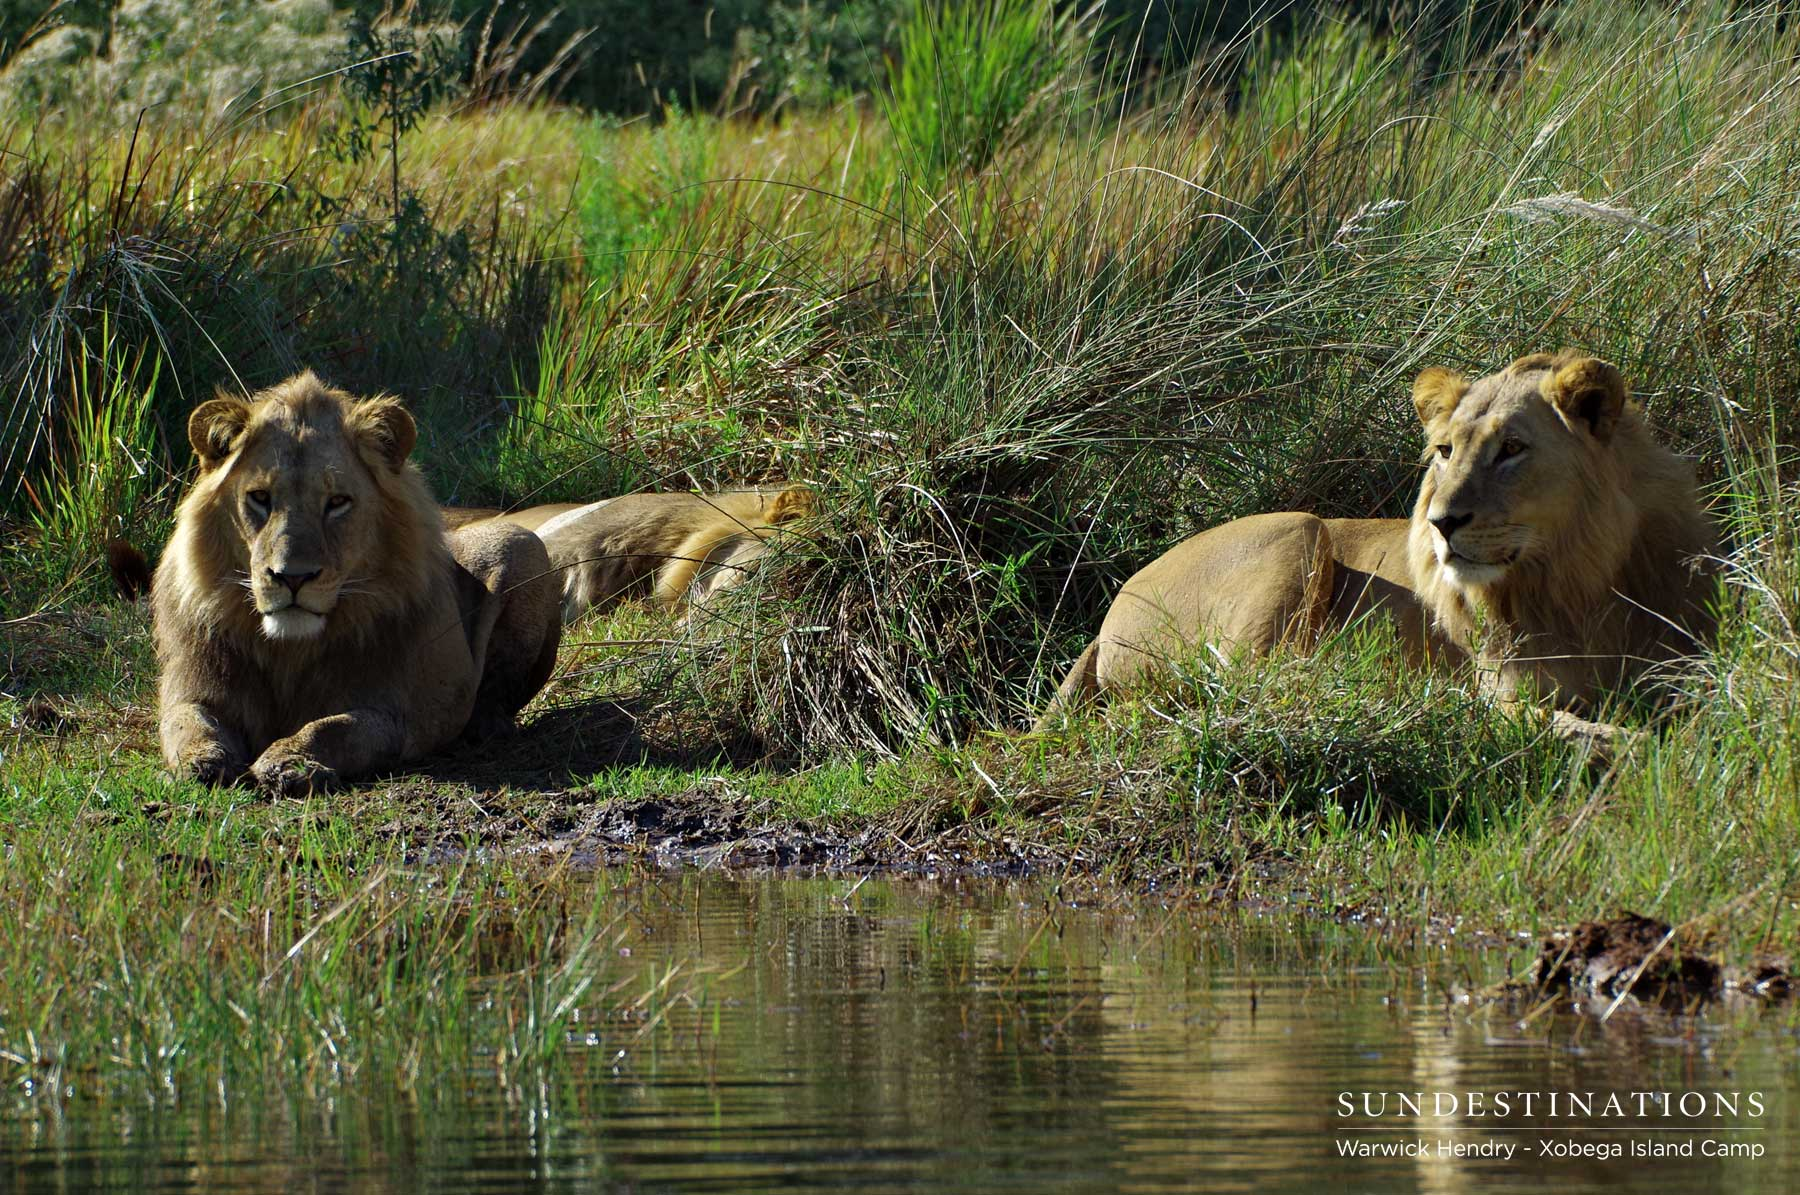 Warwick's Rare Sighting of the Okavango Delta's Swamp Lions